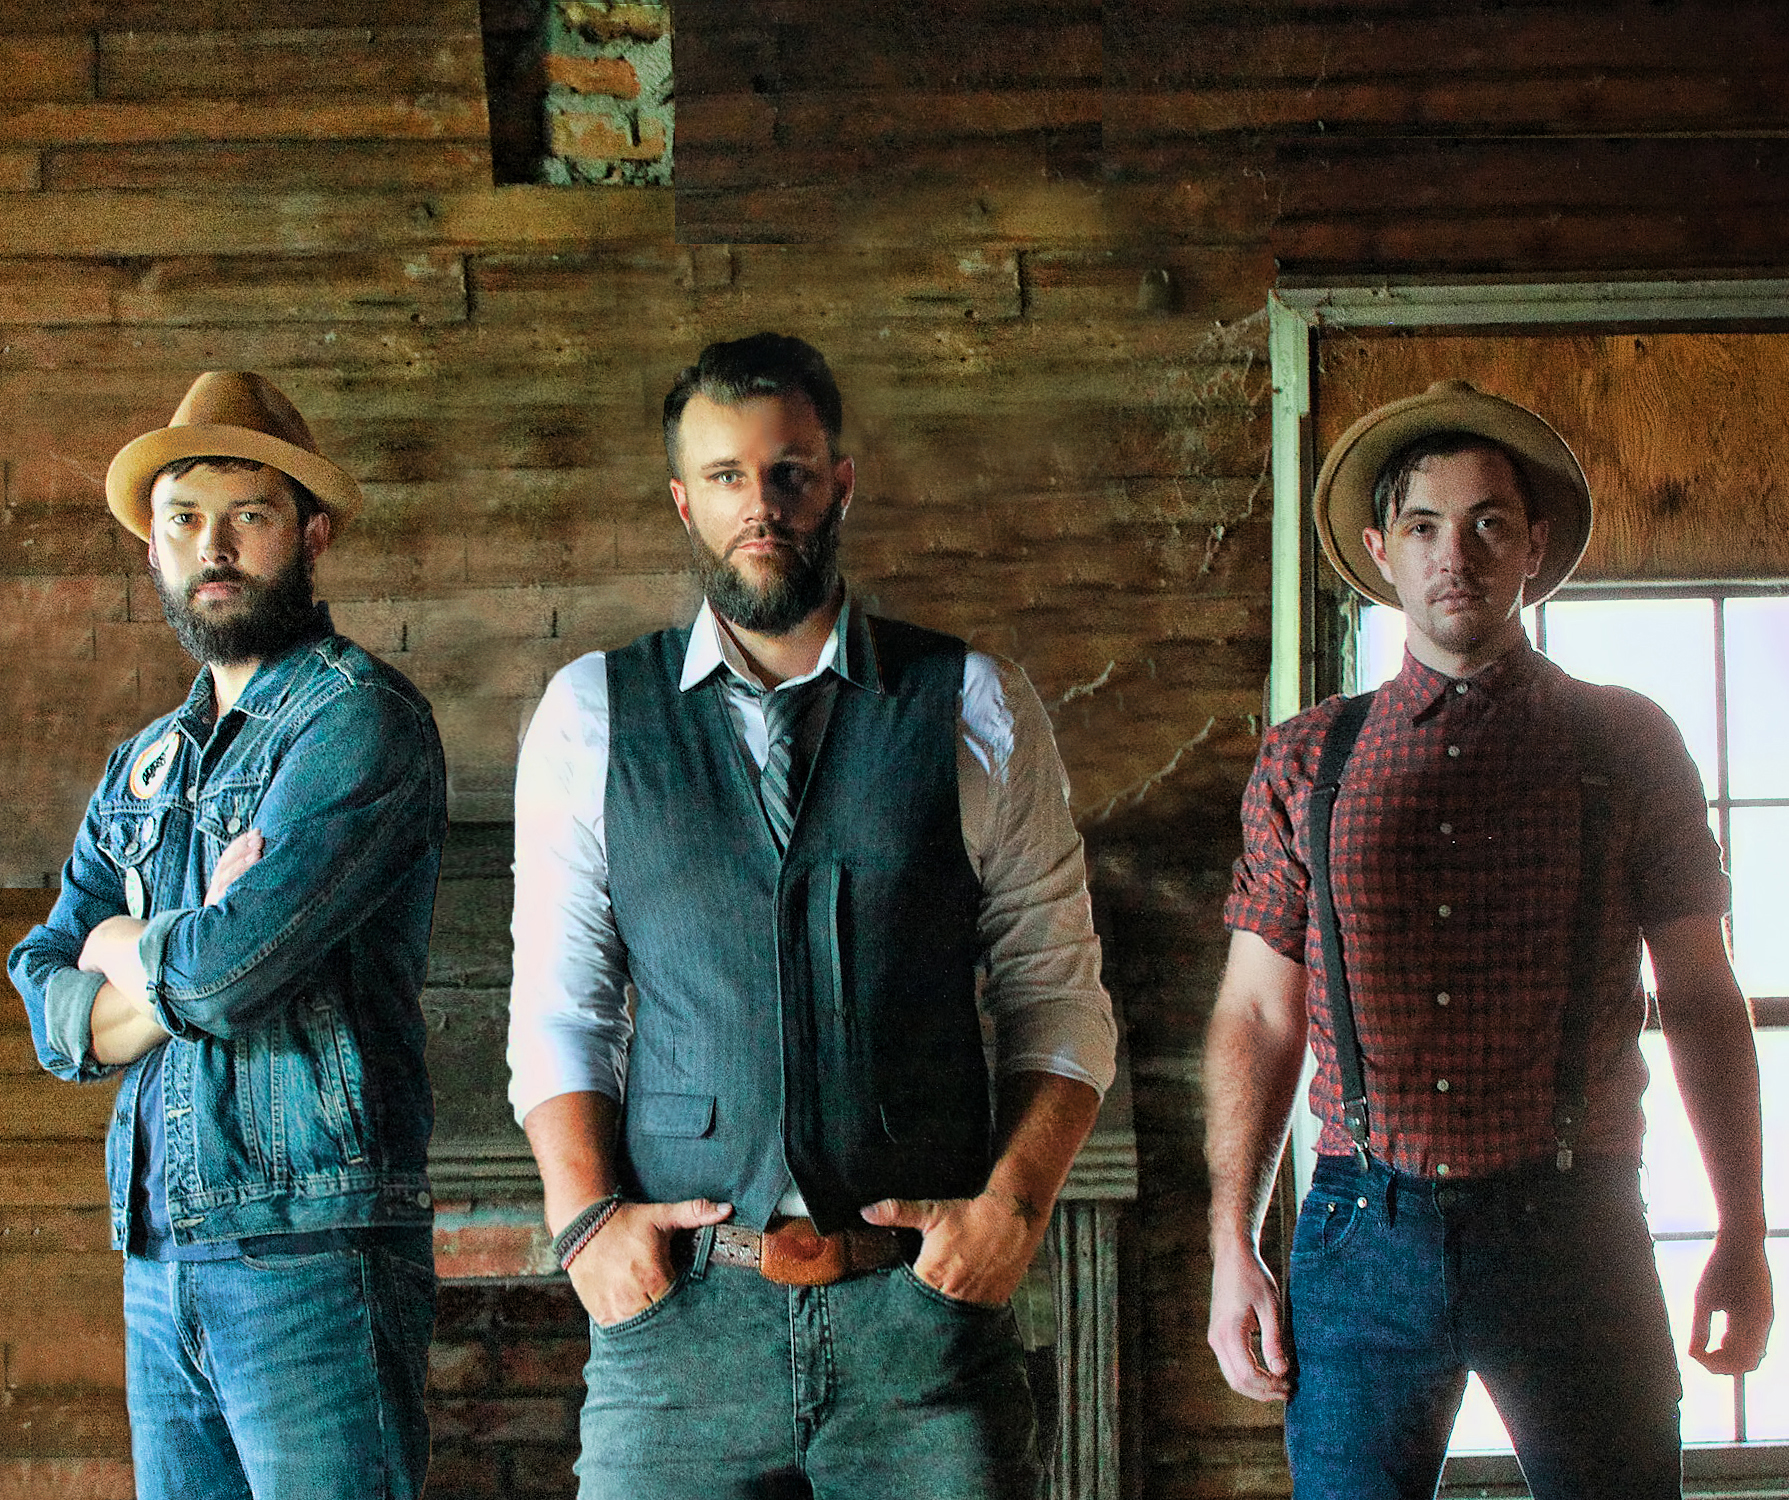 ALABAMA ROCK BAND HOLLIS CREEK REVIVAL RELEASES NEW SINGLE